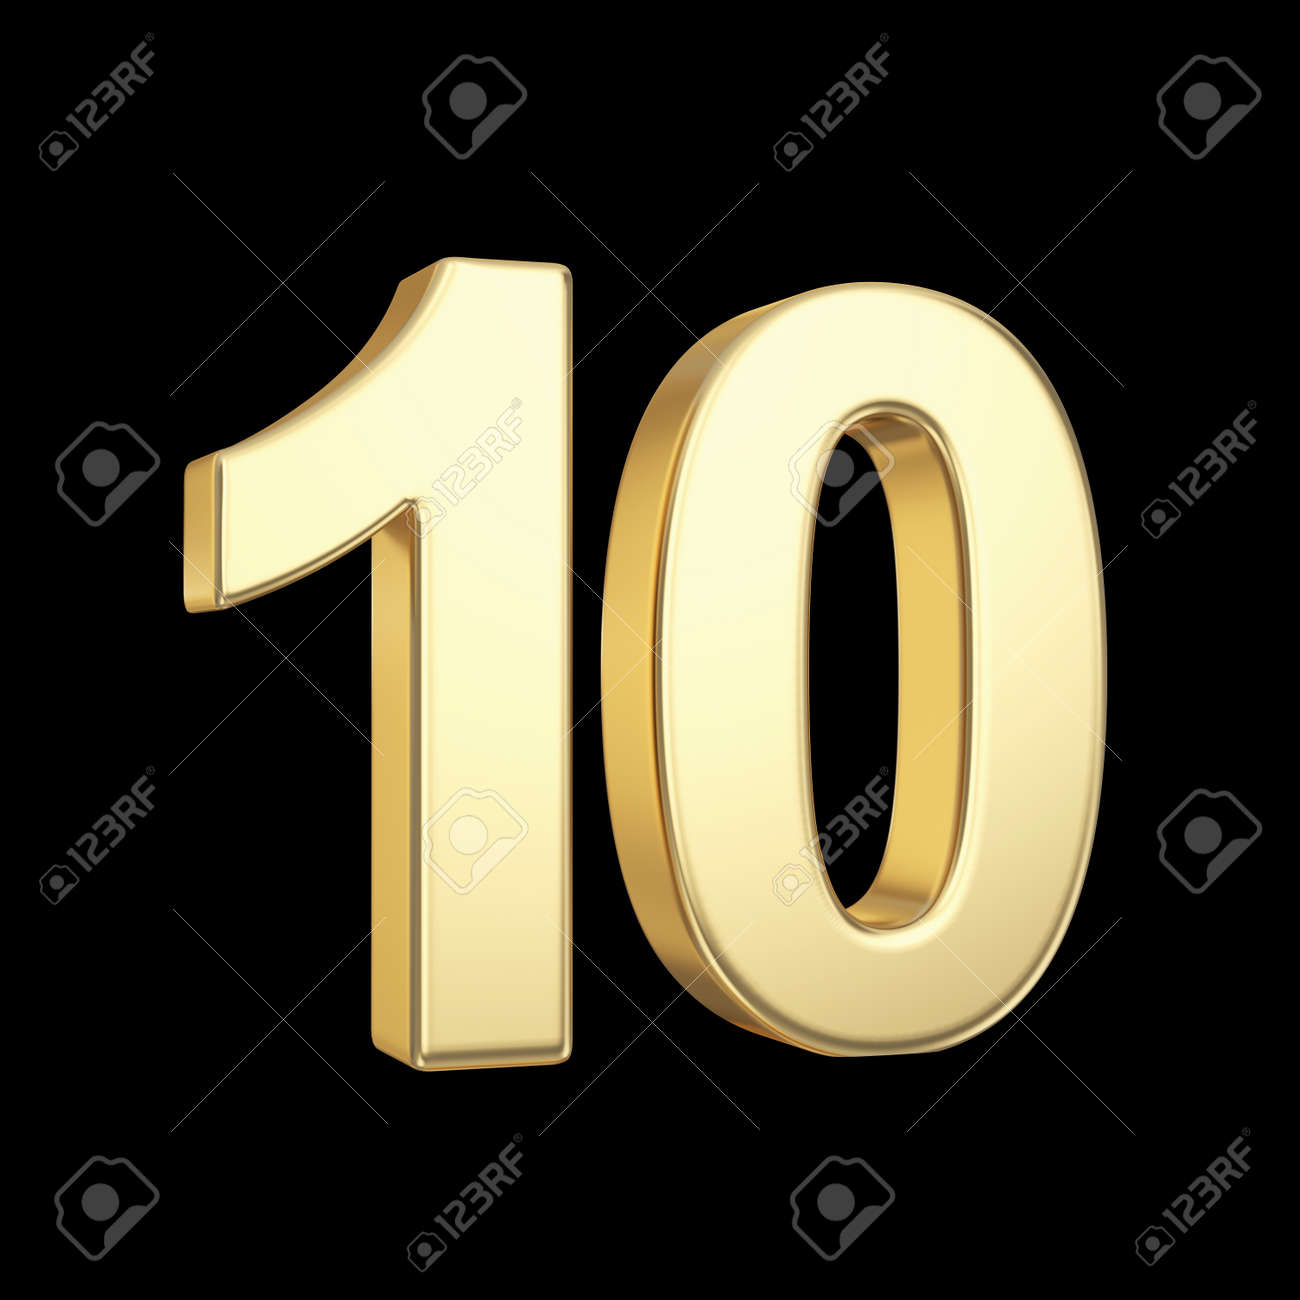 Number ten - golden number isolated on black with clipping path - 21092450